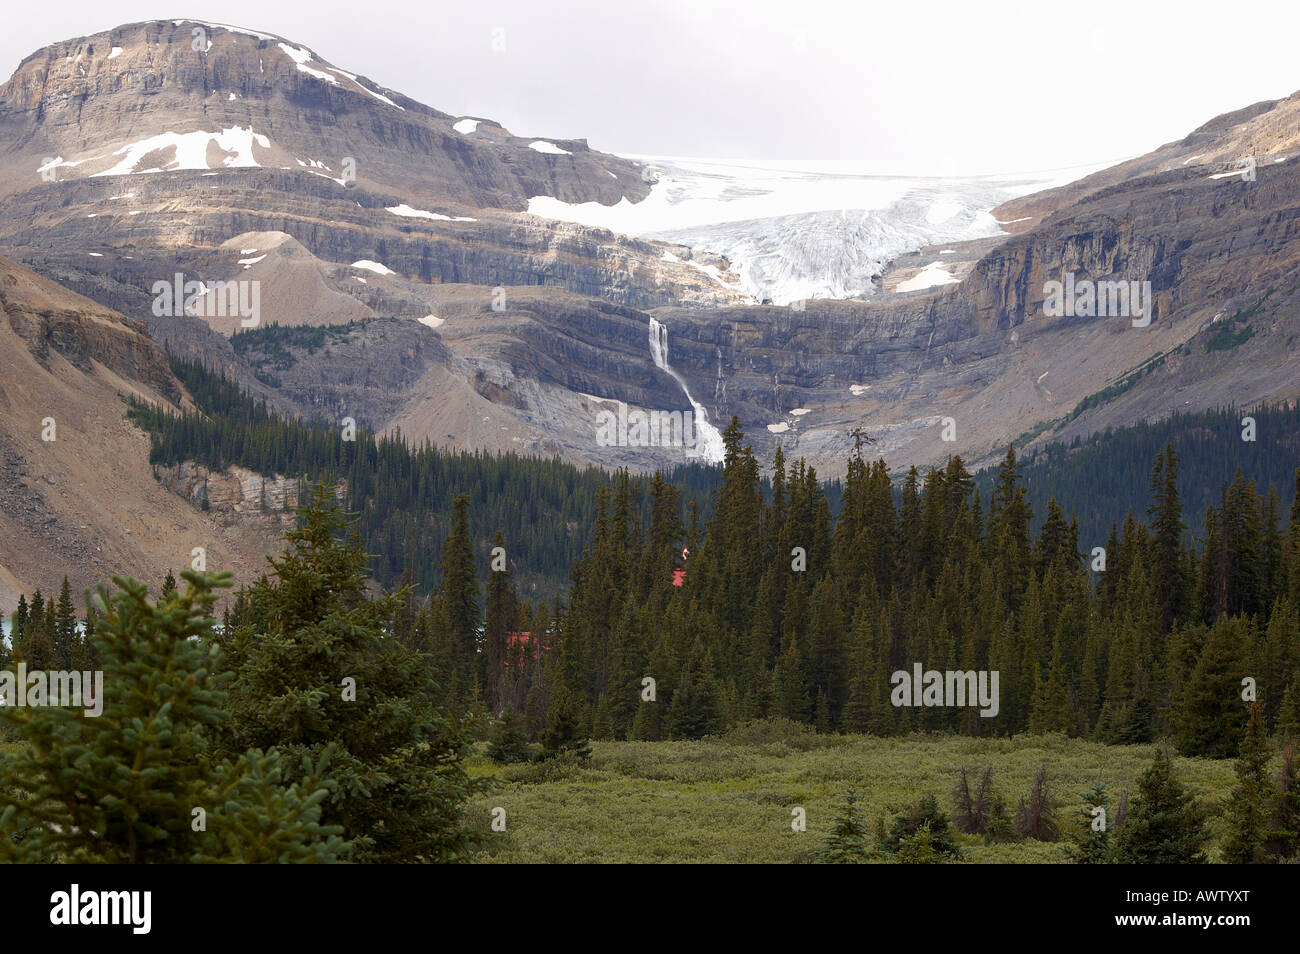 Bow Glacier above Bow Lake and Num-Ti-Jah Lodge in the Banff National Park, Alberta, Canada - Stock Image